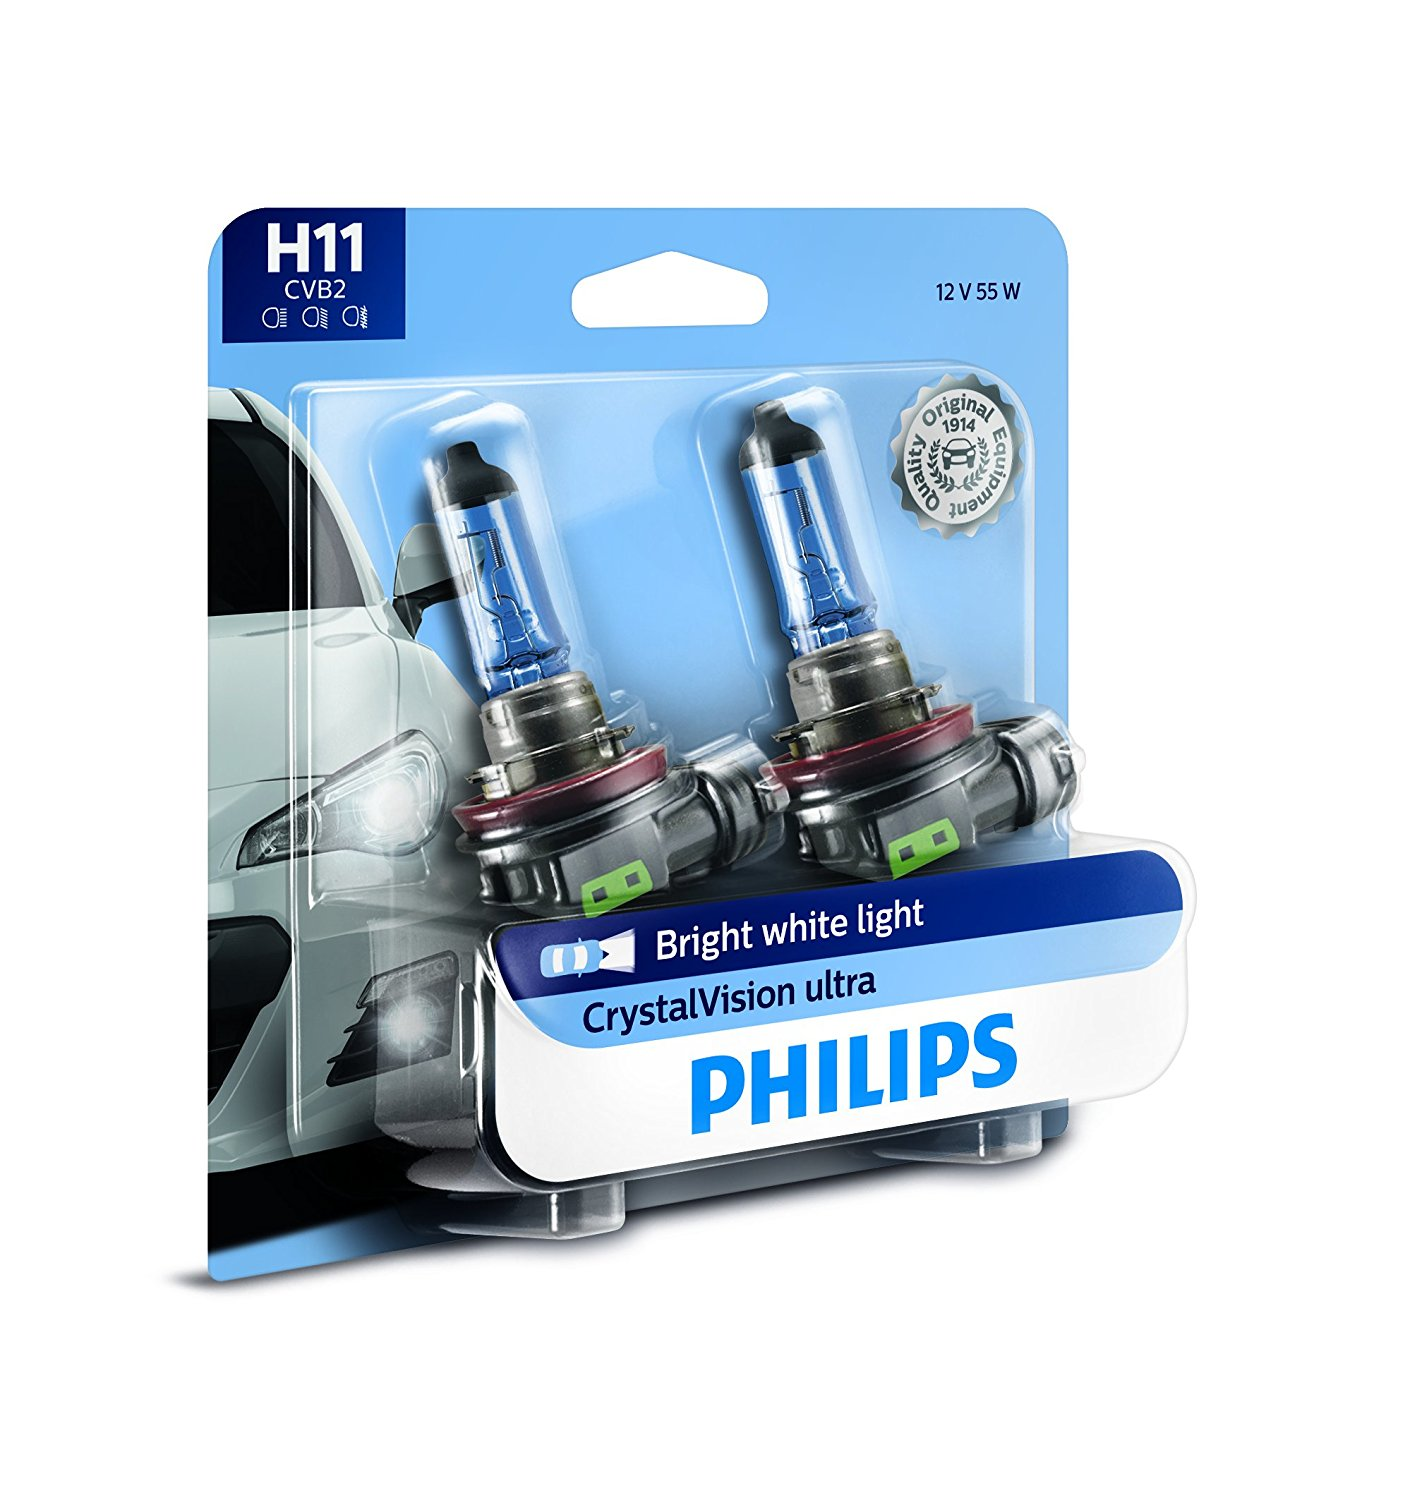 Philips H11 CrystalVision Ultra Upgrade Bright White Headlight Bulb